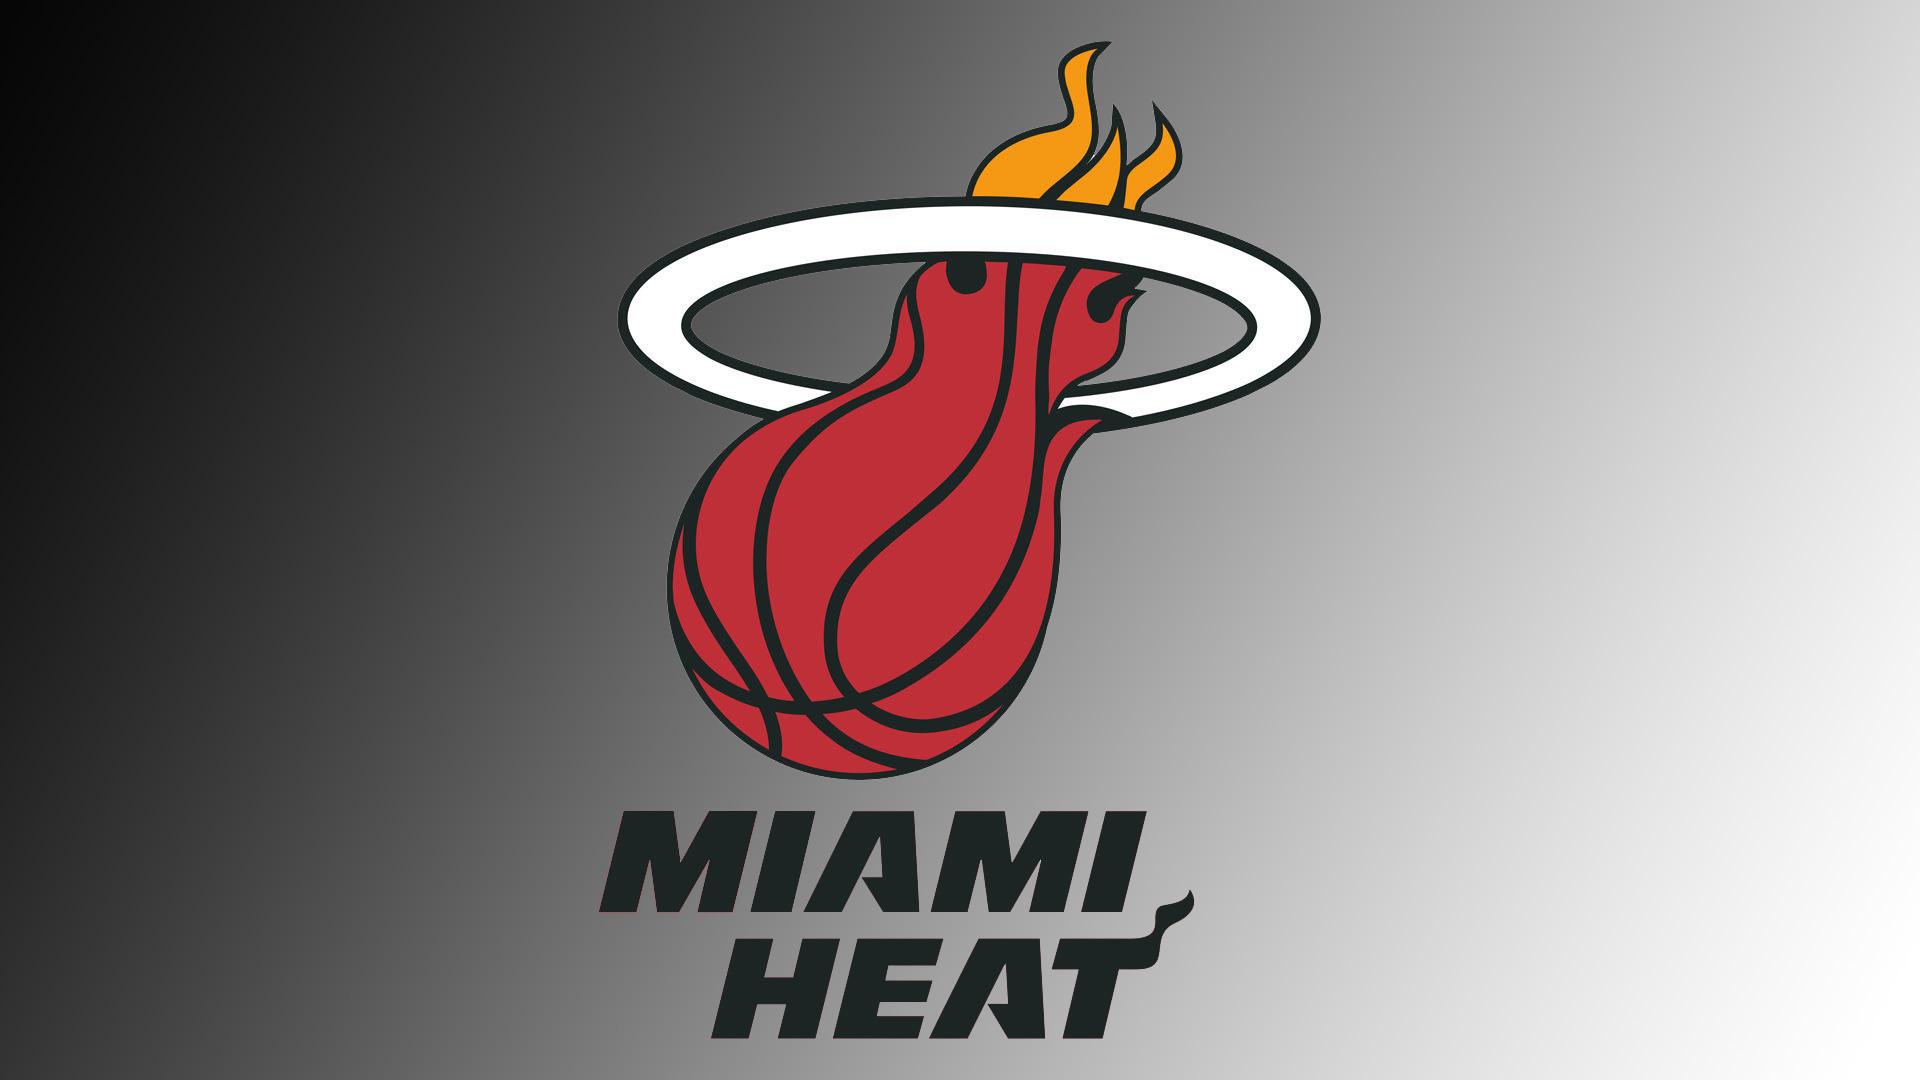 Miami Heat Wallpaper 2018 Hd 67 Pictures